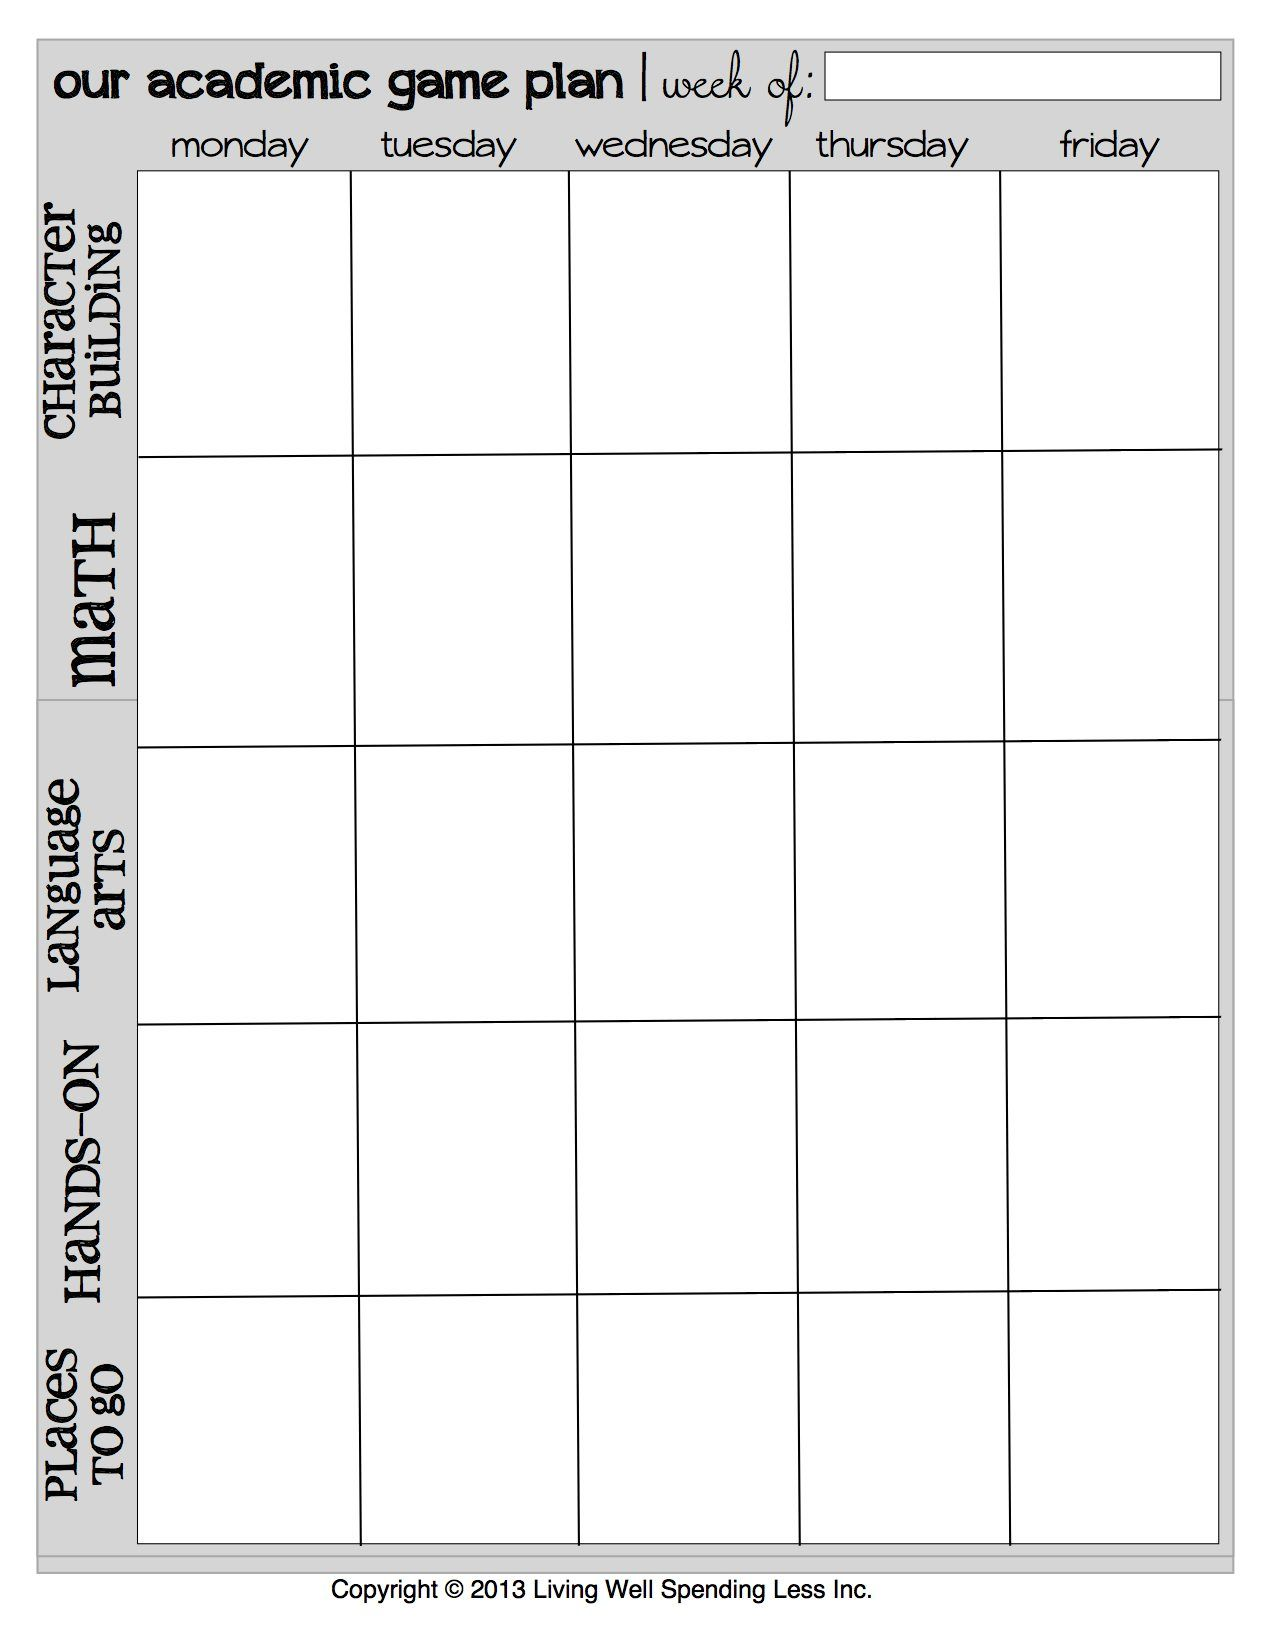 Free Printable Homeschool Weekly Academic Game Plan